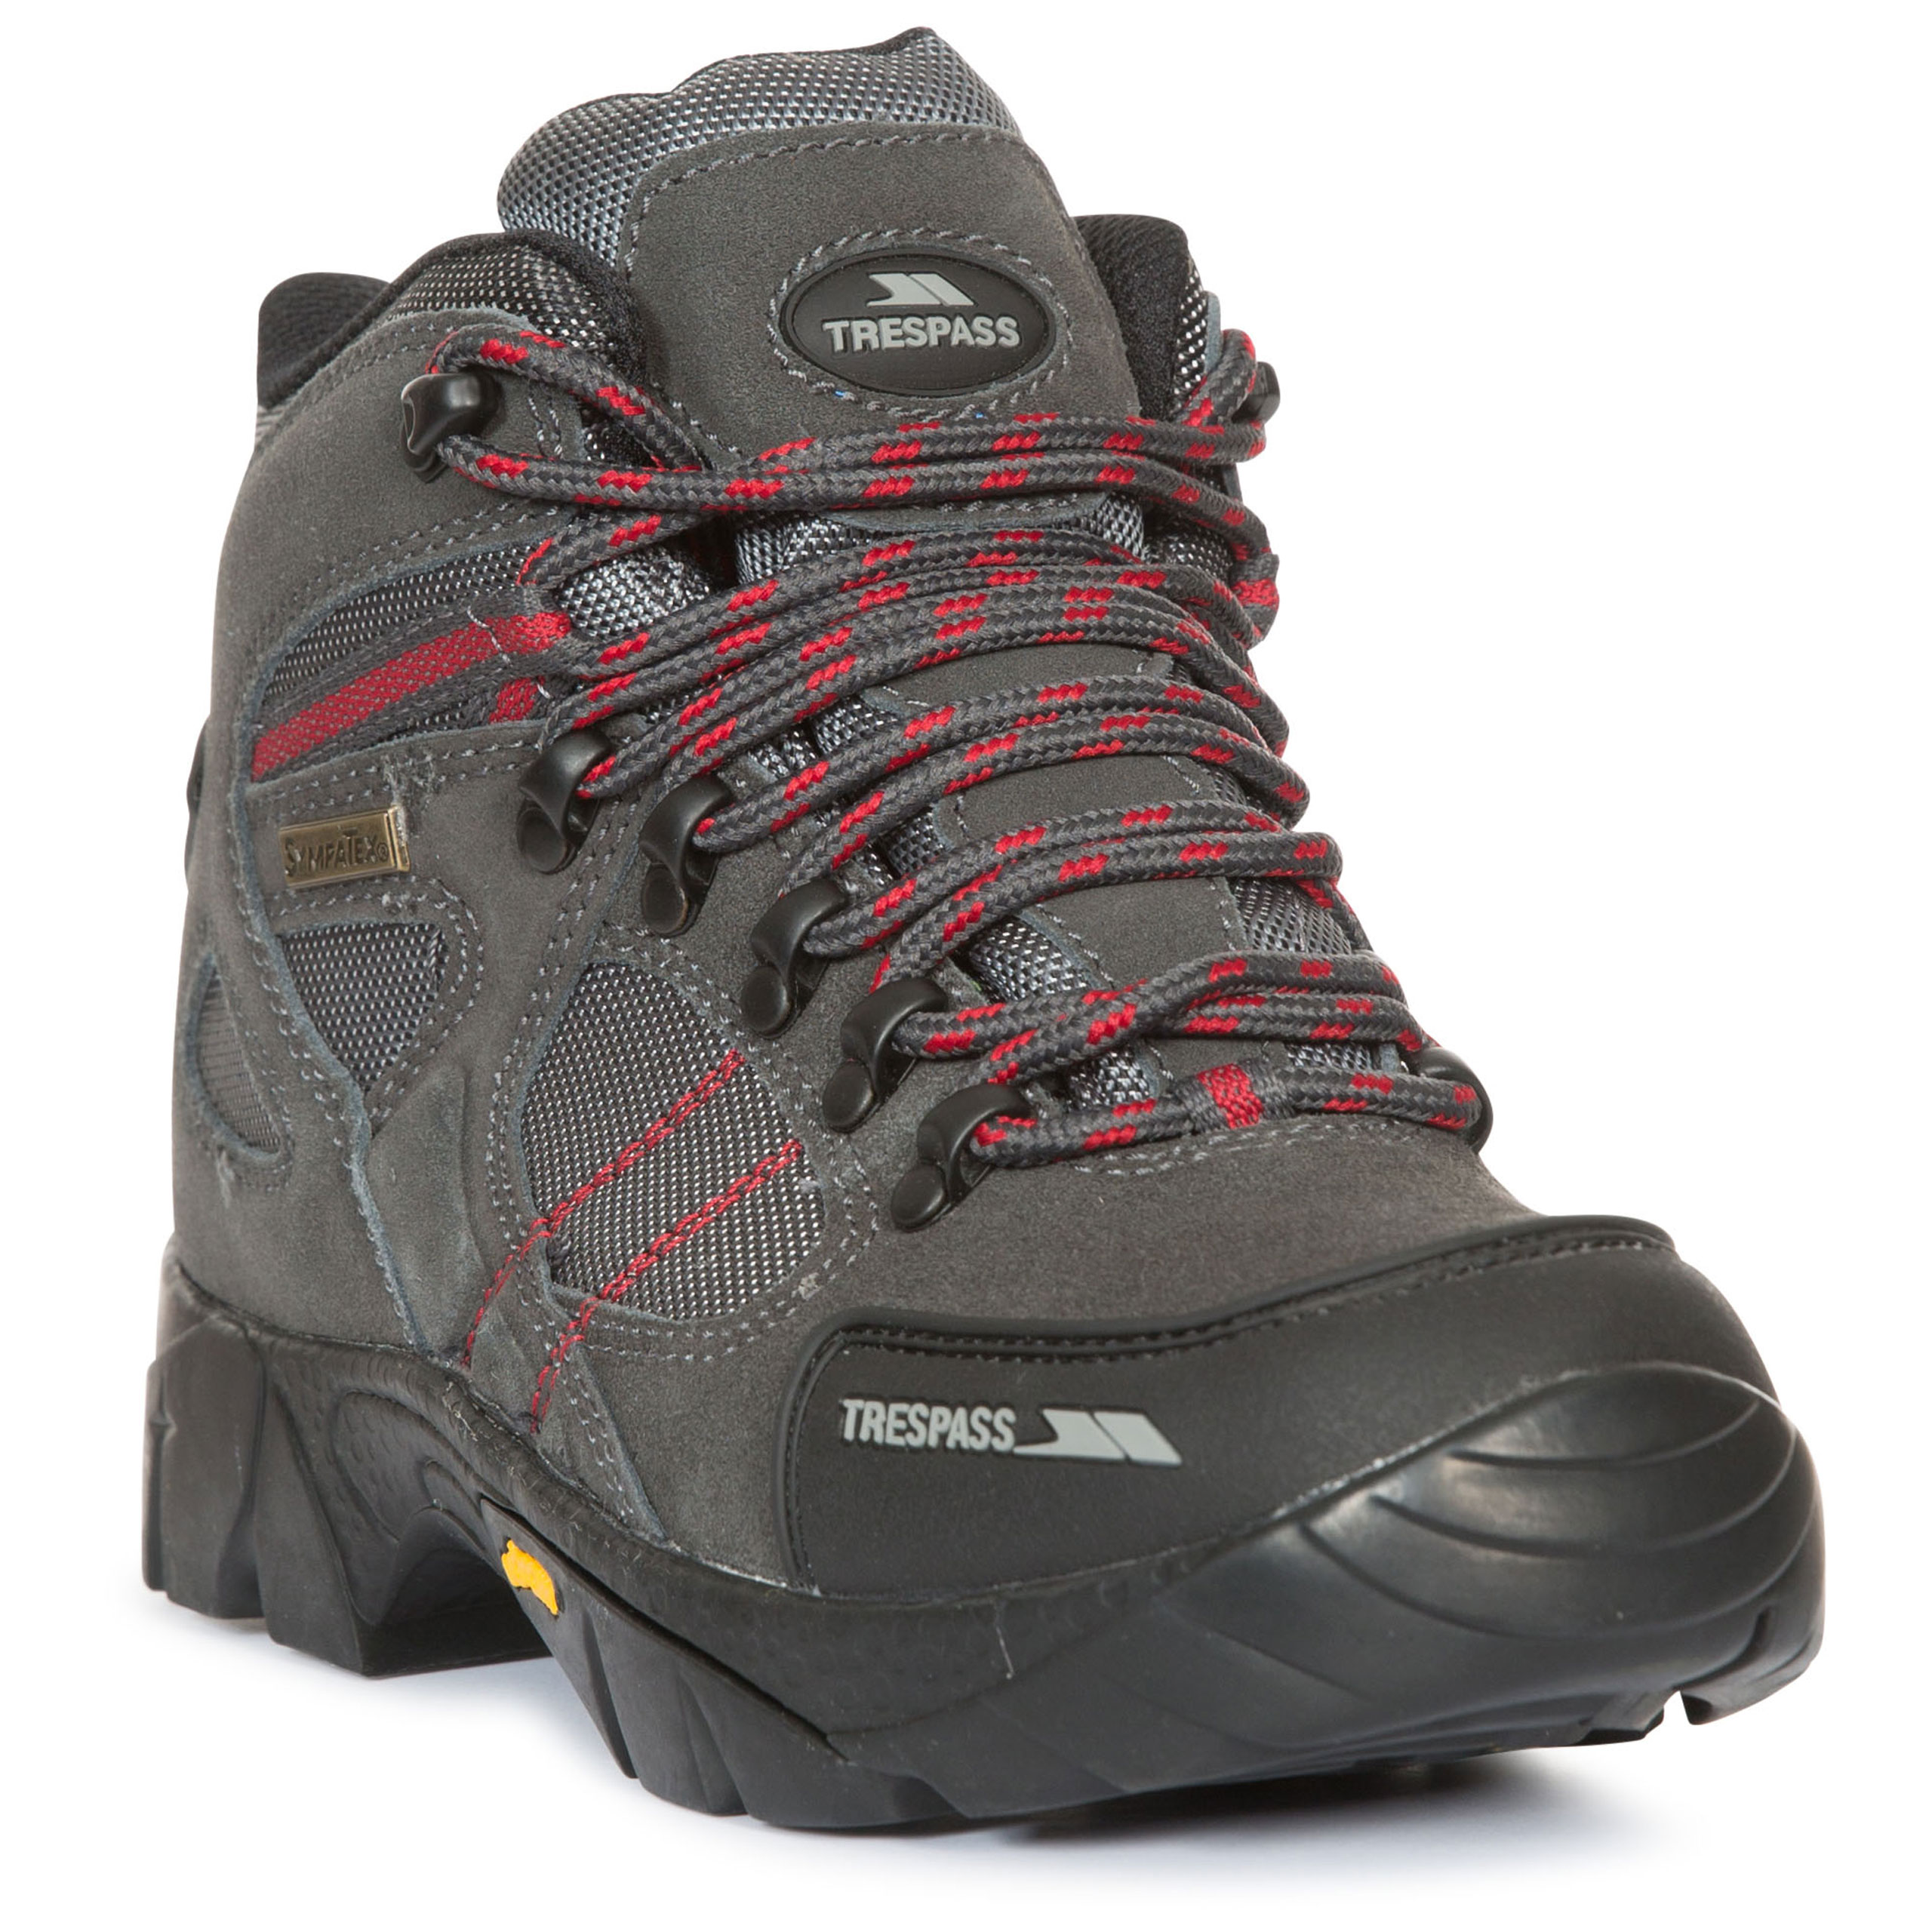 d497ad893fa Details about Trespass Ridgeway Womens Waterproof Walking Boots for Hiking  in Grey & Brown